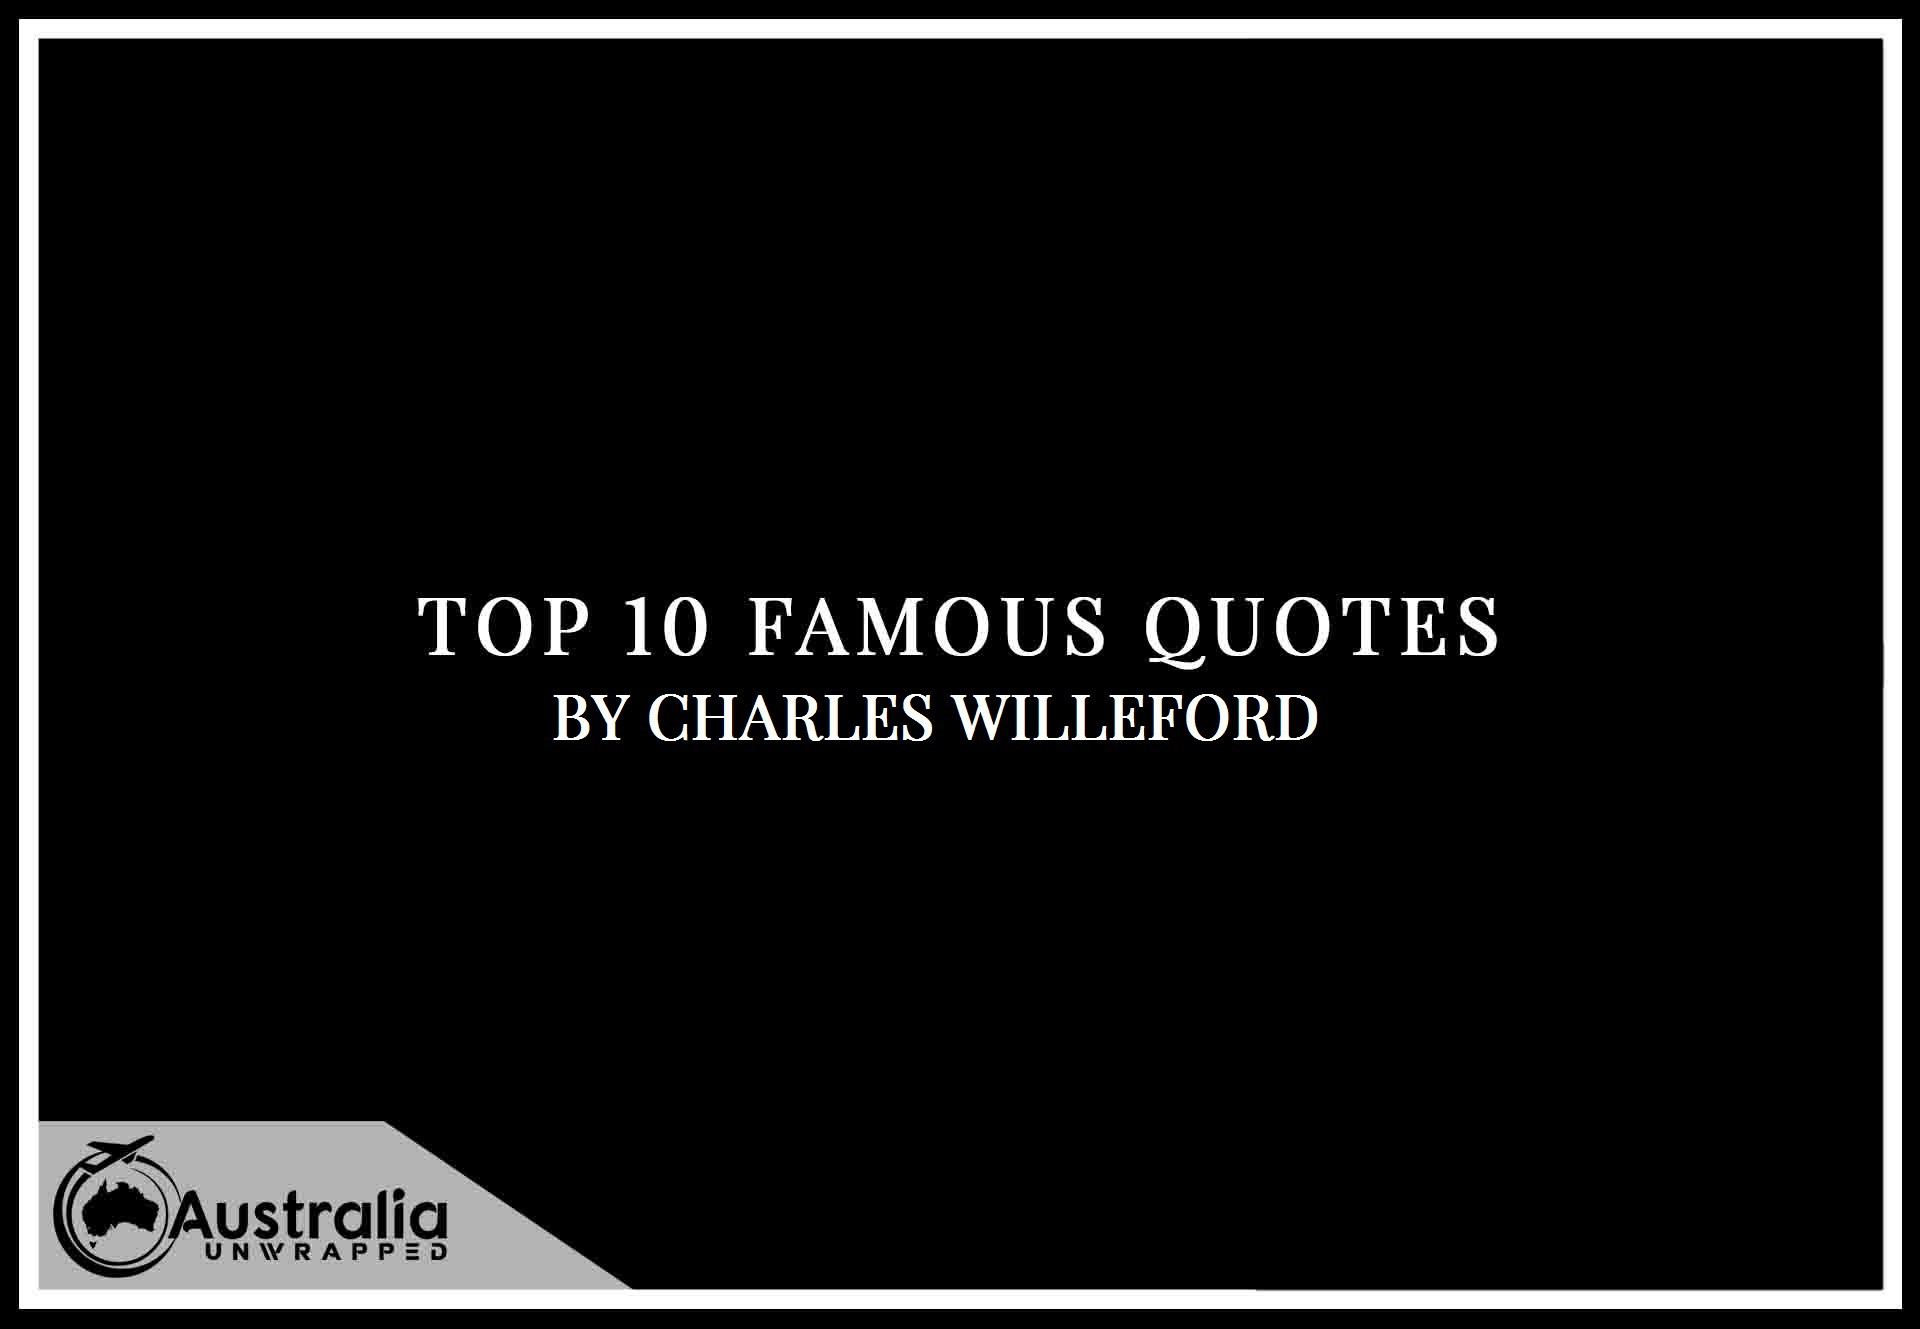 Charles Willeford's Top 10 Popular and Famous Quotes